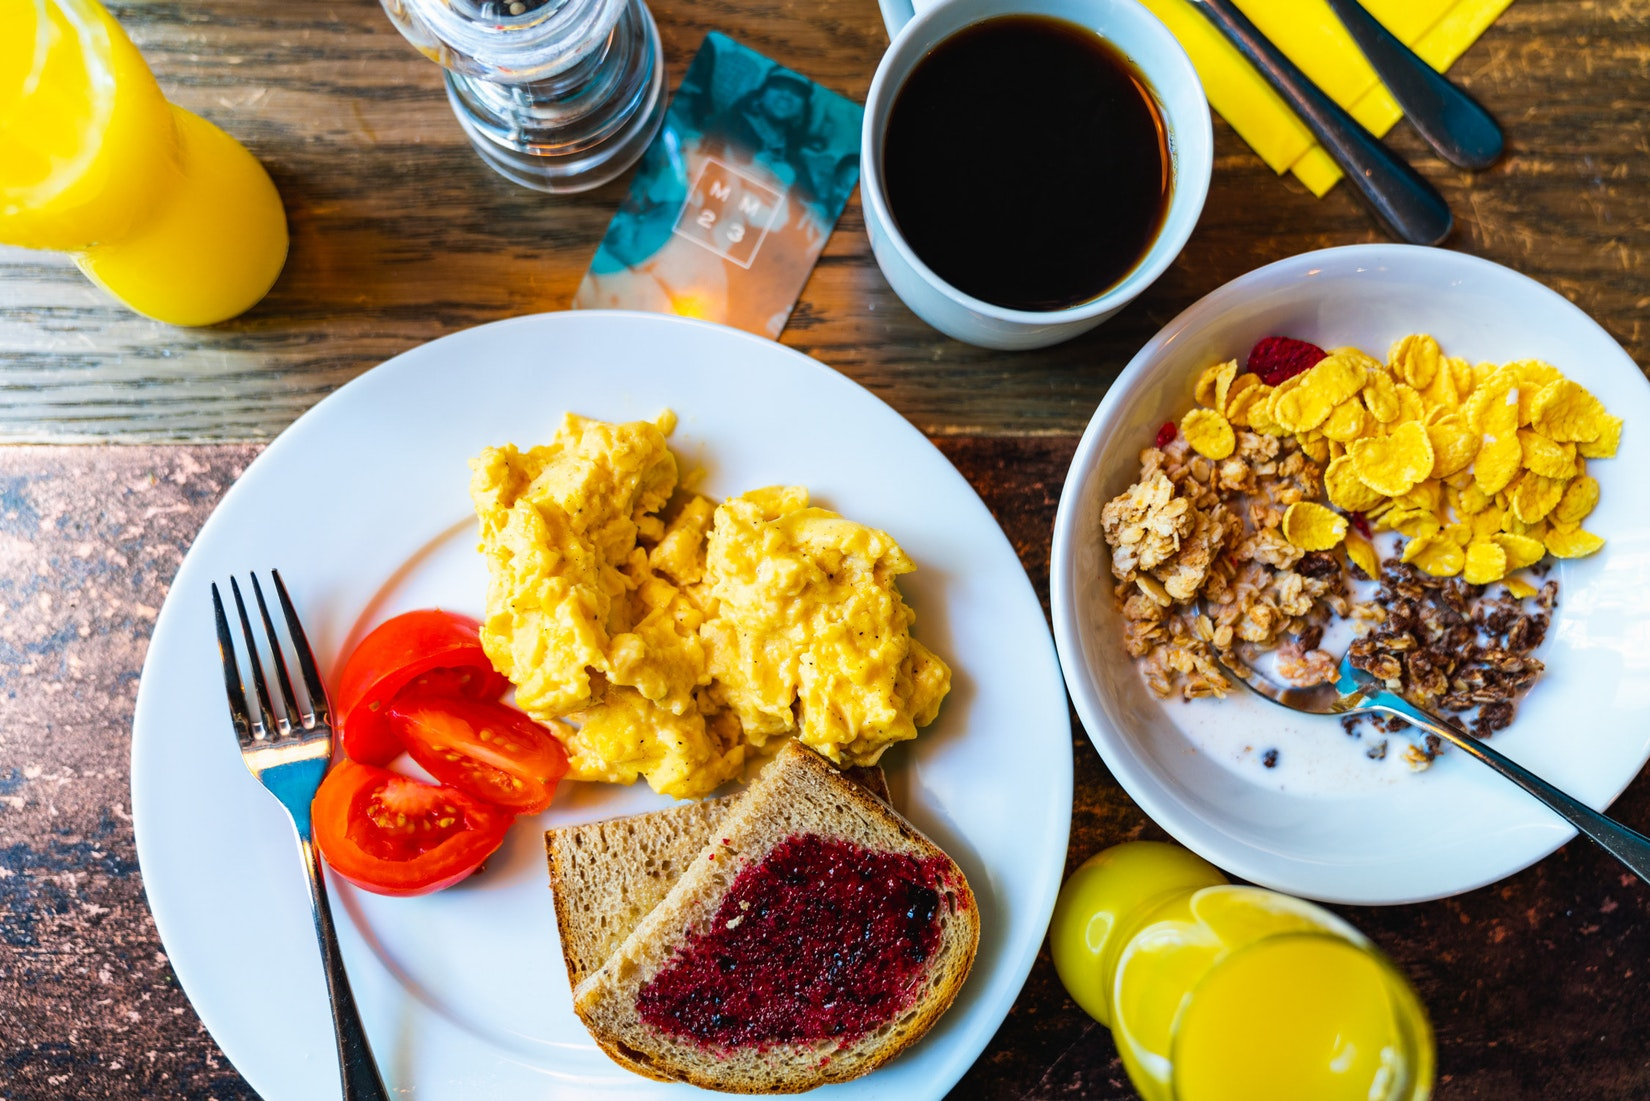 Big breakfast with toast, eggs, tomatoes, cereal, coffee and more!